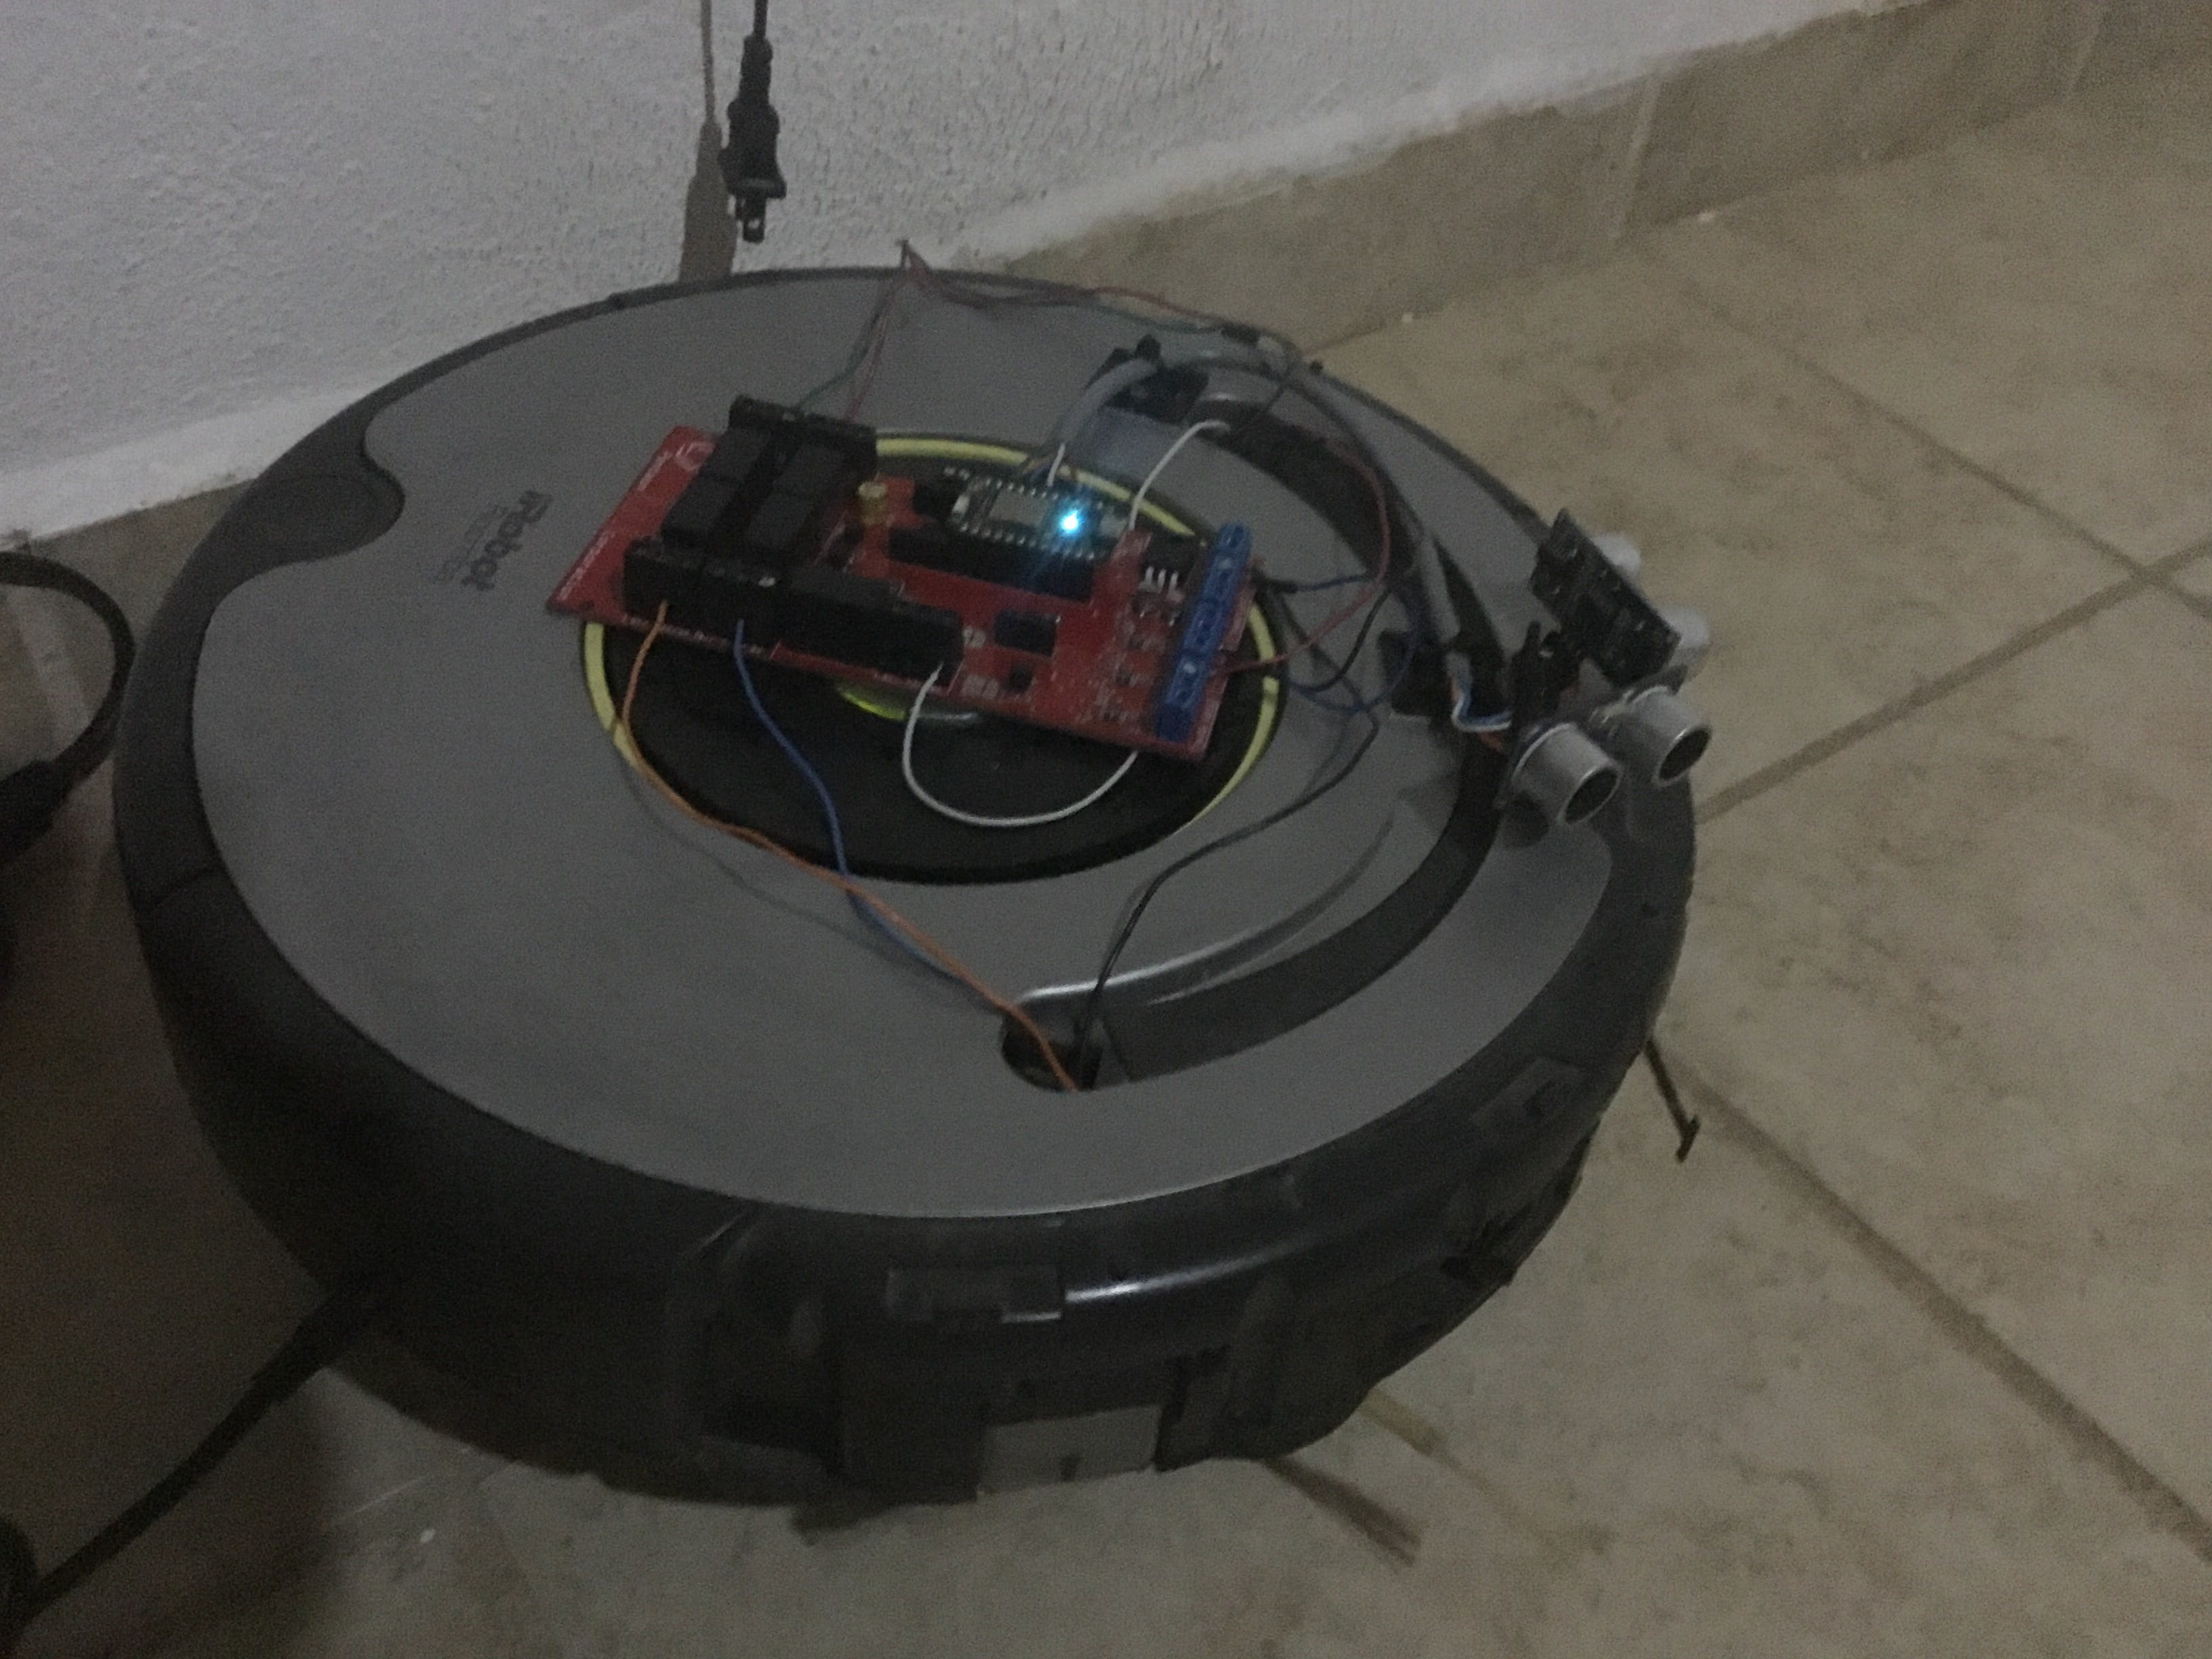 Hacking an iRobot to Act as RC with ThunderSoft & Particle